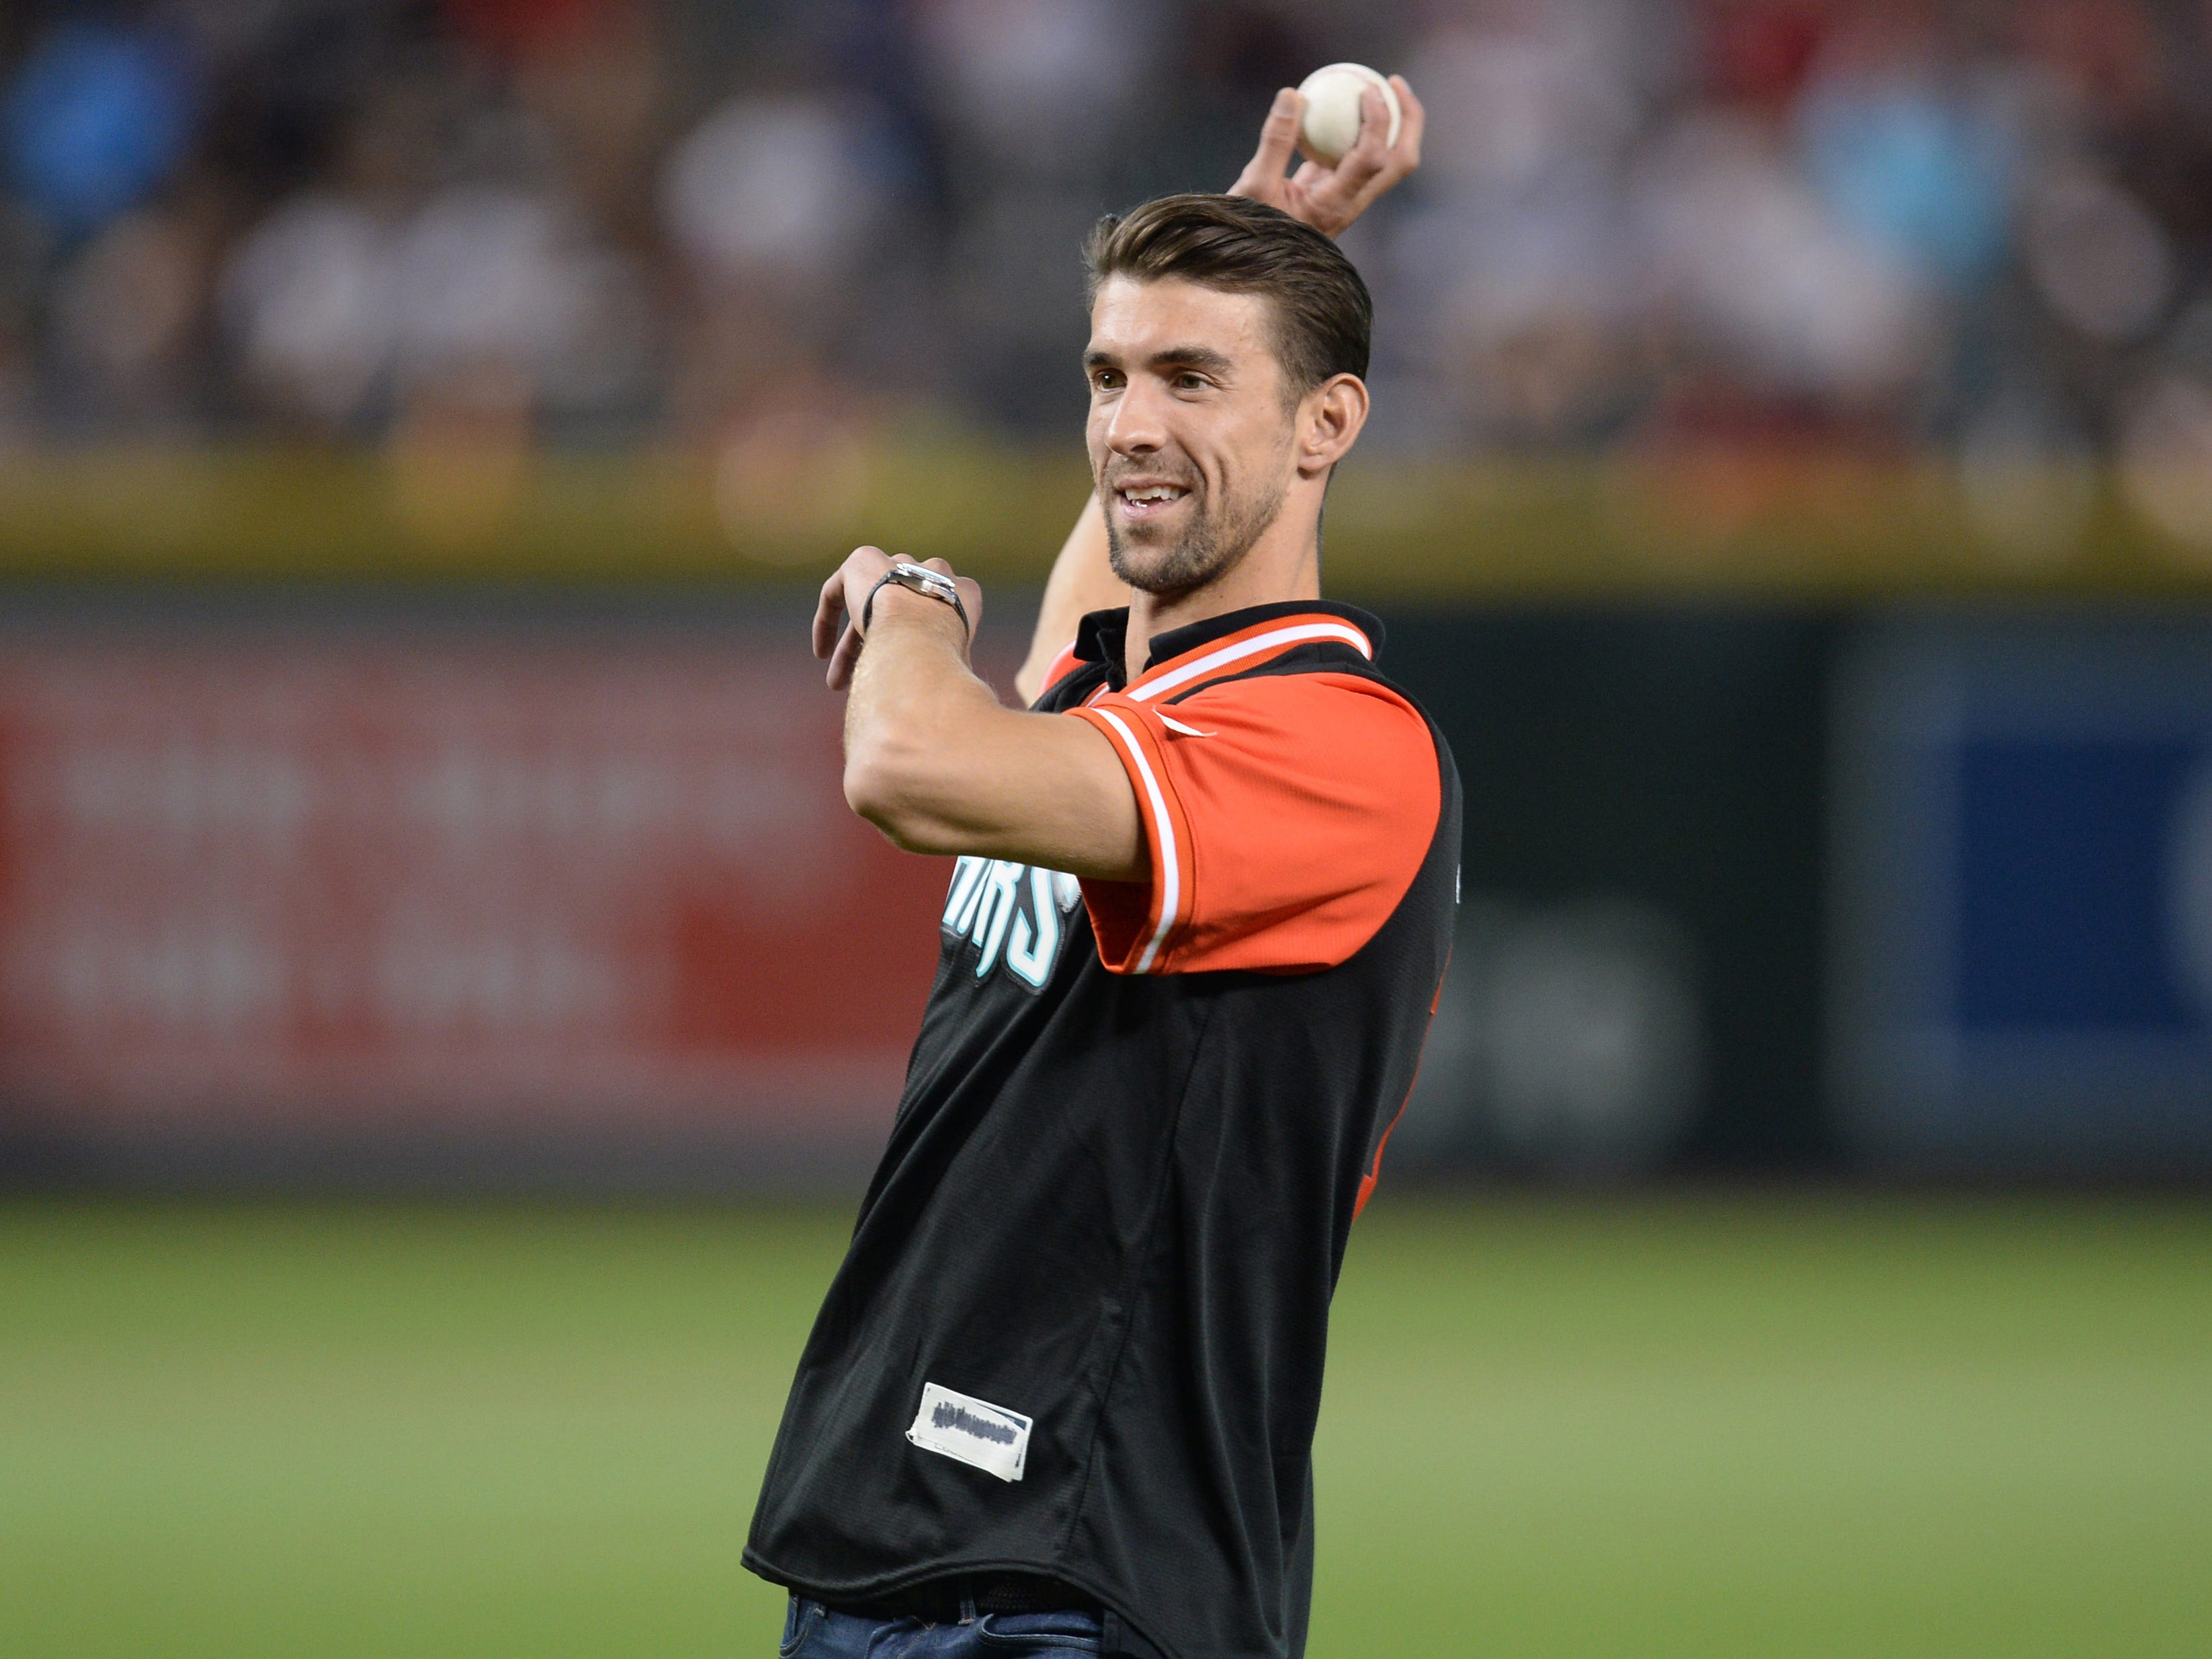 Aug 25, 2018; Phoenix, AZ, USA; Olympic gold medal swimmer Michael Phelps throws out the first pitch prior to the game between the Arizona Diamondbacks and the Seattle Mariners at Chase Field. Mandatory Credit: Joe Camporeale-USA TODAY Sports